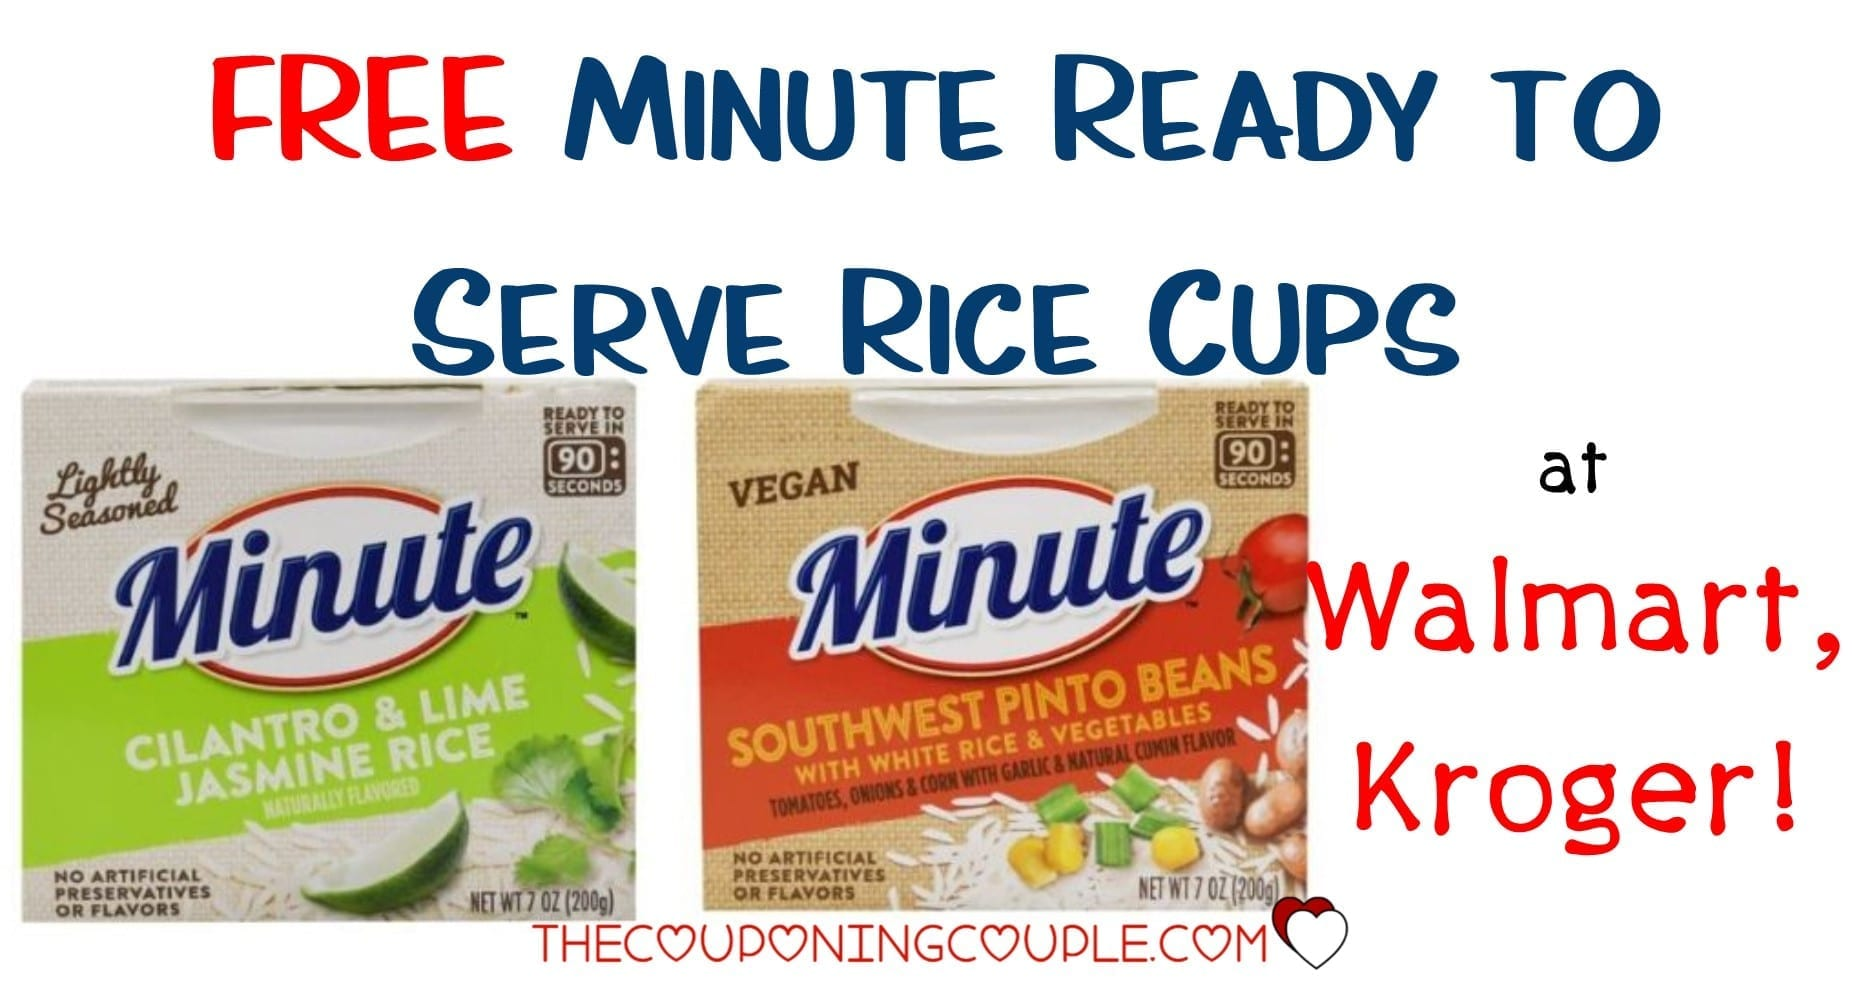 Minute Ready to Serve Rice Cups